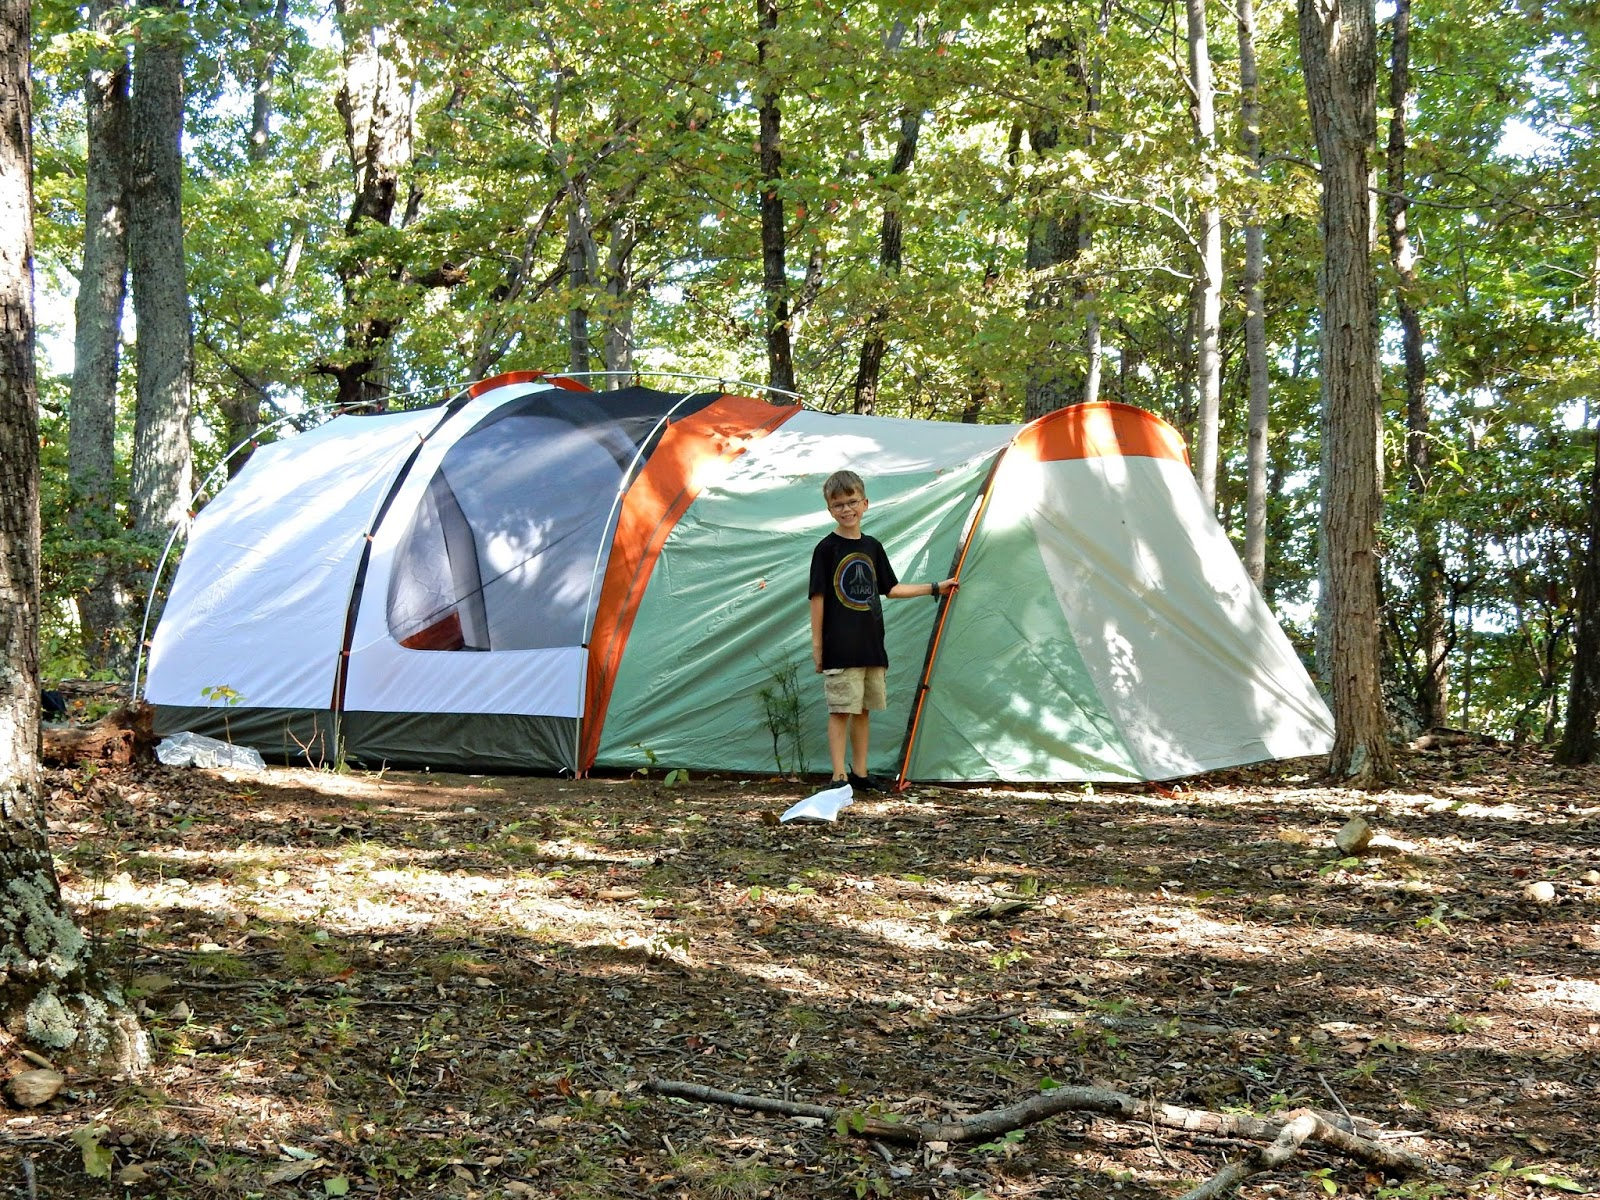 If itu0027s anything like our last tent this will get a lot of use! We are eager to take some c&ing trips - now we just have to find the time! & Two Bears Farm and the Three Cubs: The REI Kingdom 6 Tent